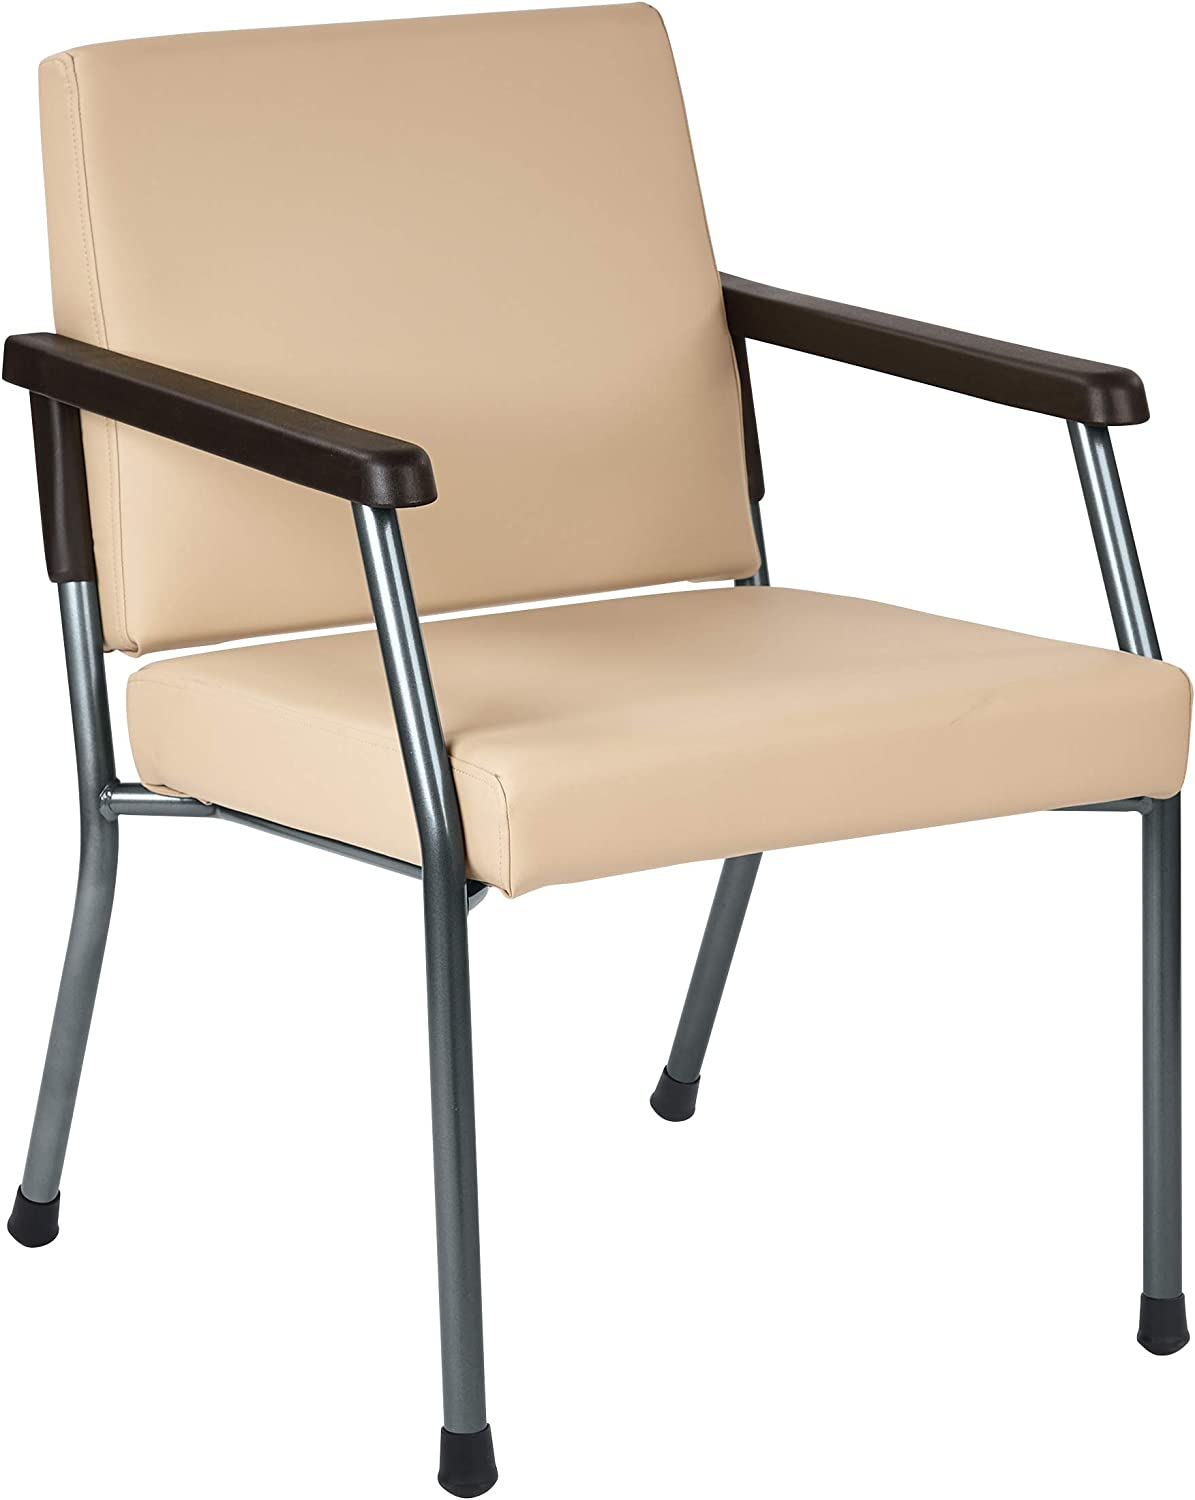 Office Star Bariatric Big and Tall Medical Office Chair with Wider Seat and  Sturdy Metal Frame with Back Reinforcement, Dillon Buff Faux Leather